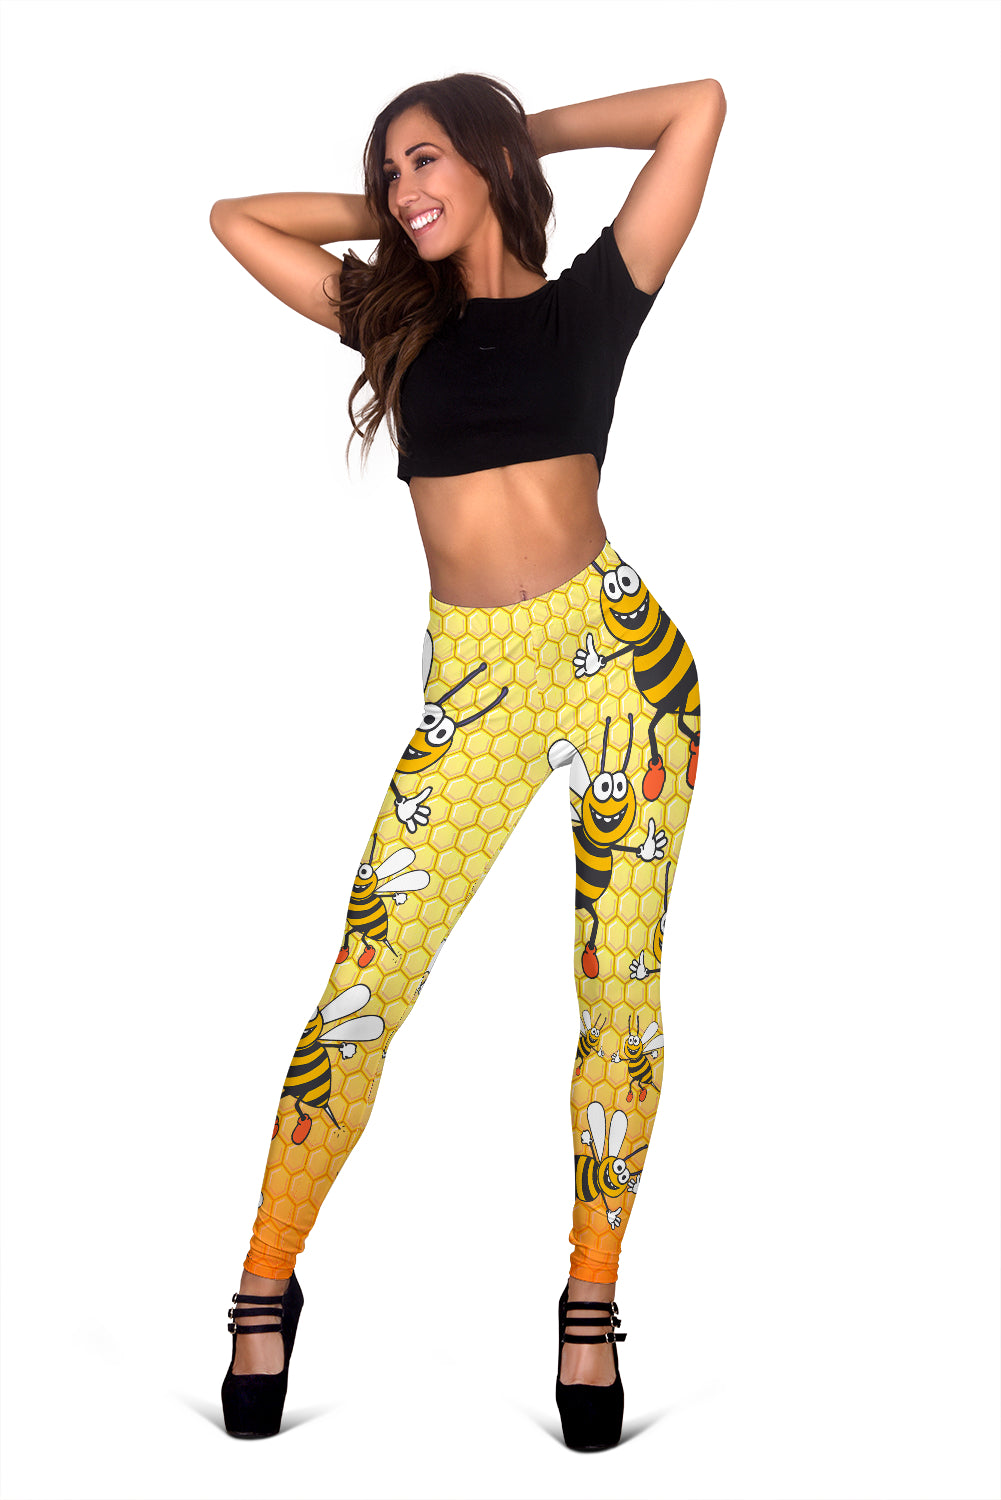 Buy Bee Leggings Leggings Leggings